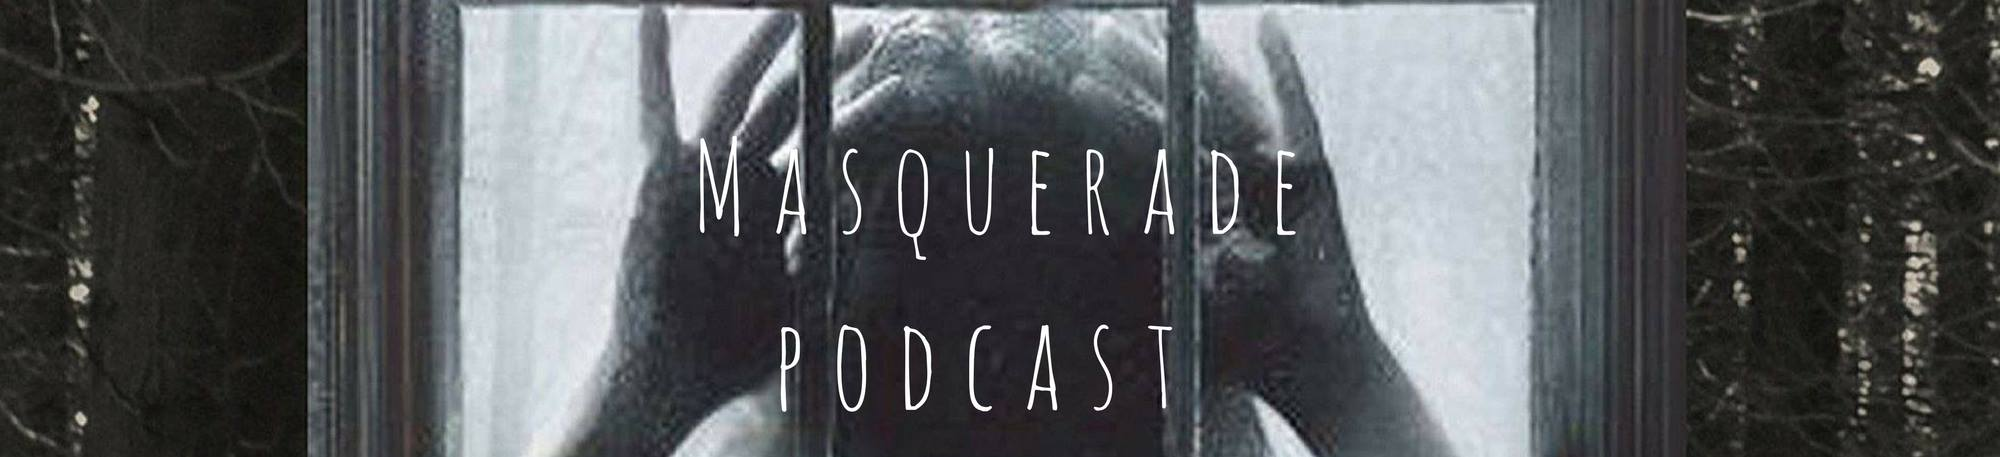 Masquerade Podcast with author Steph Young